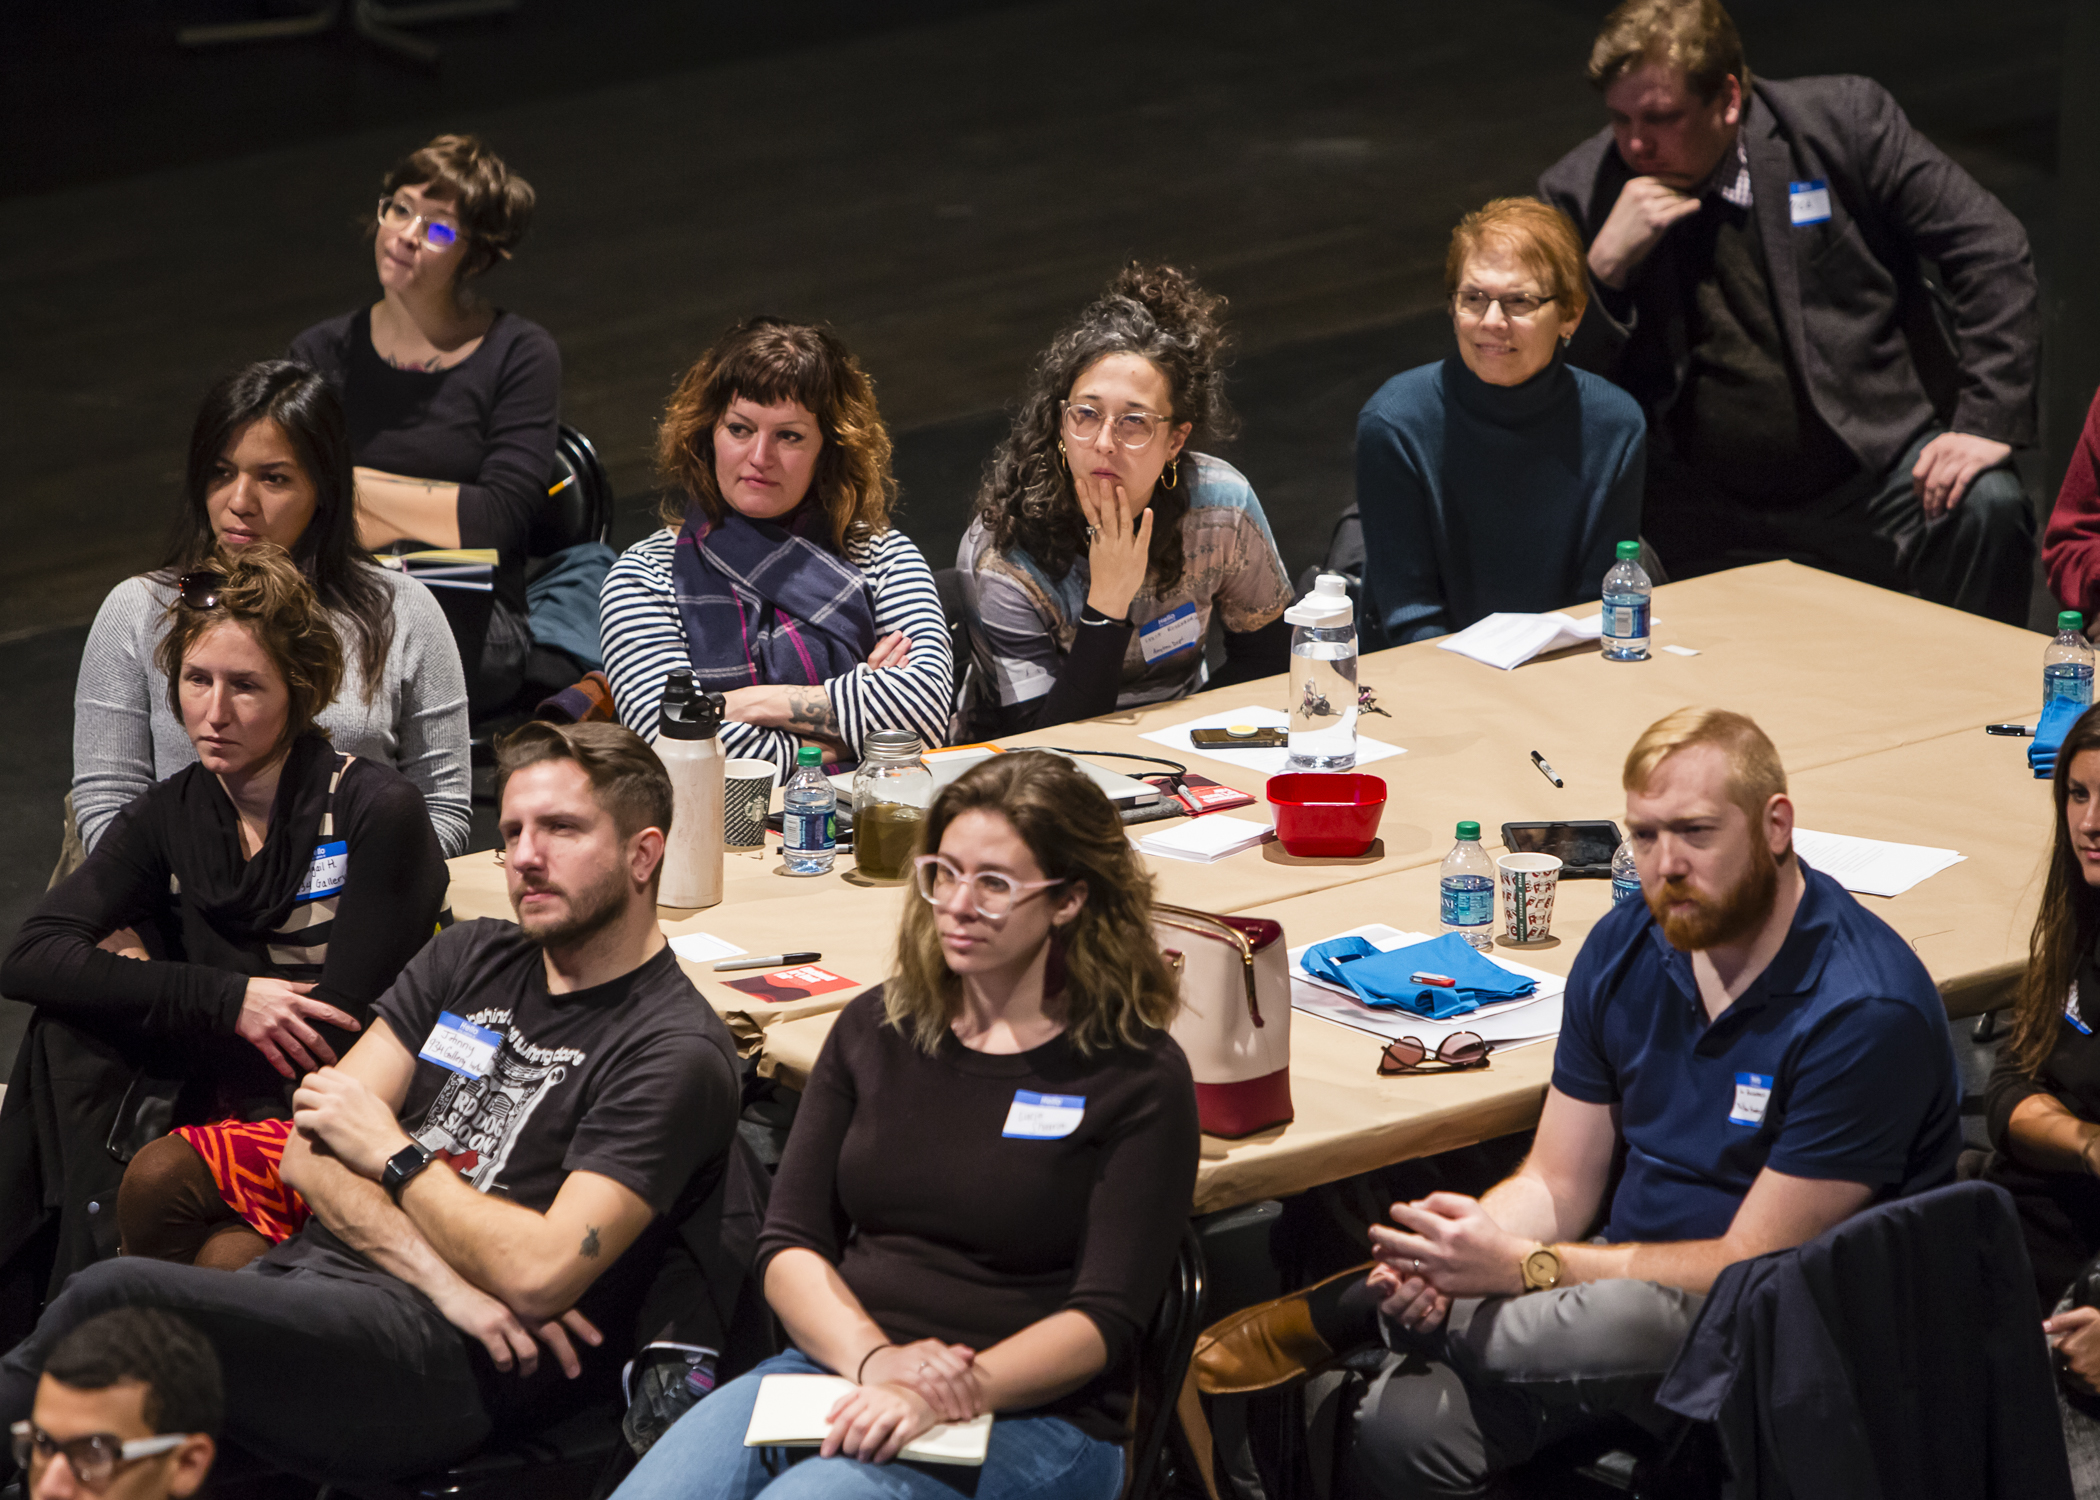 A table of participants at the November 16, 2019 event hear here: artist-run spaces and collectives in Ohio, in the Performance Space at the Wexner Center for the Arts. Photo: Katie Spengler Gentry